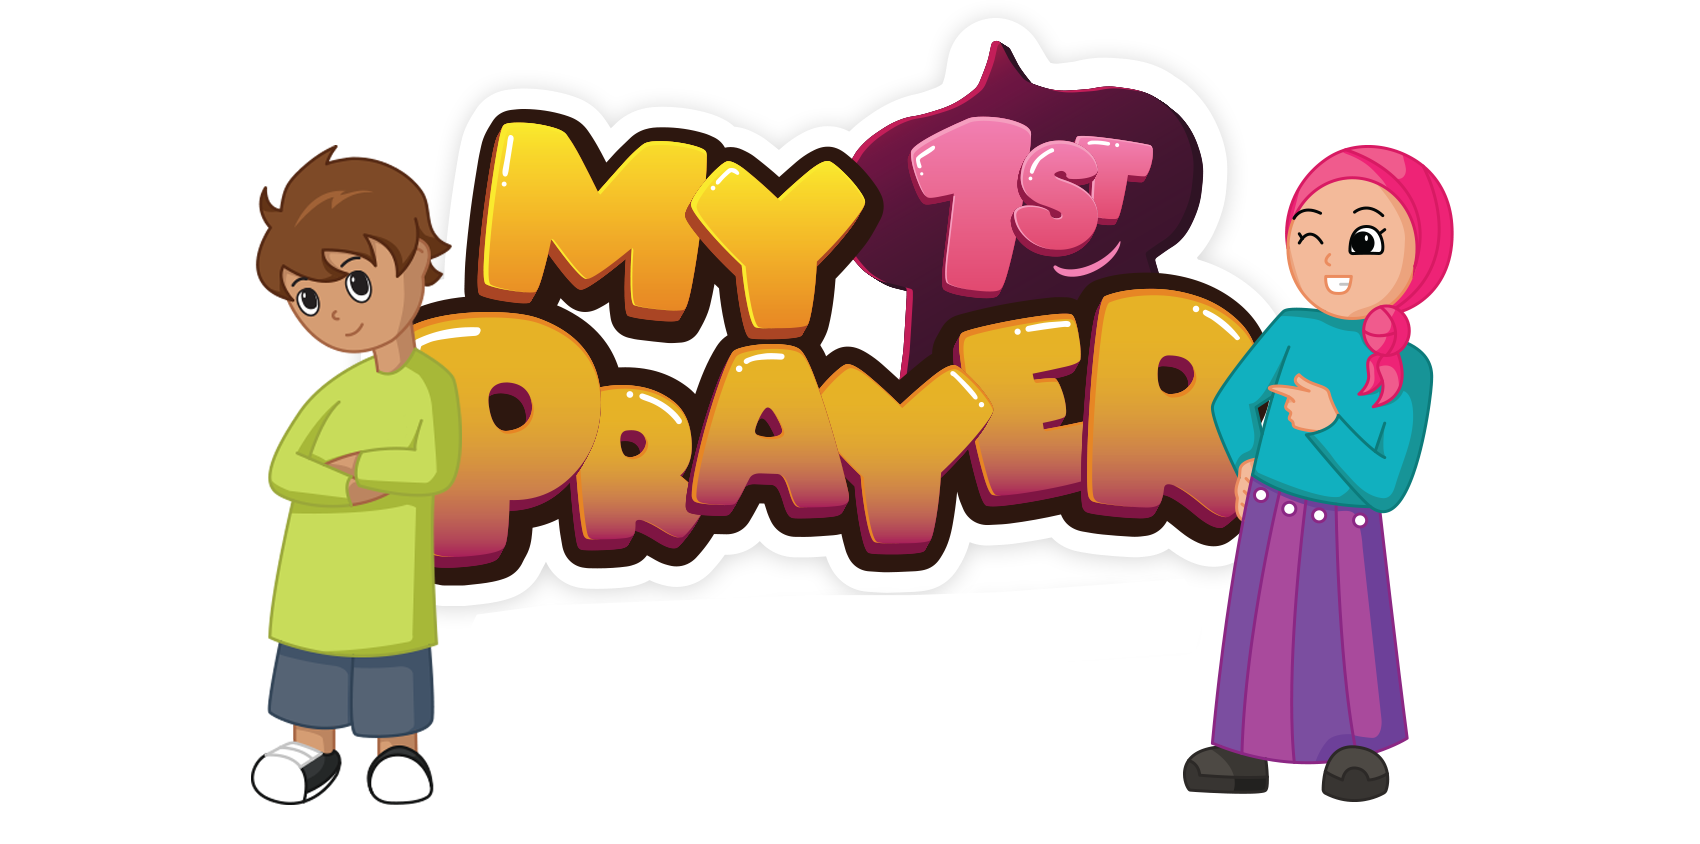 My 1st Prayer book, app and prayer mat displayed. Kids can learn salah, prayer and namaz easy